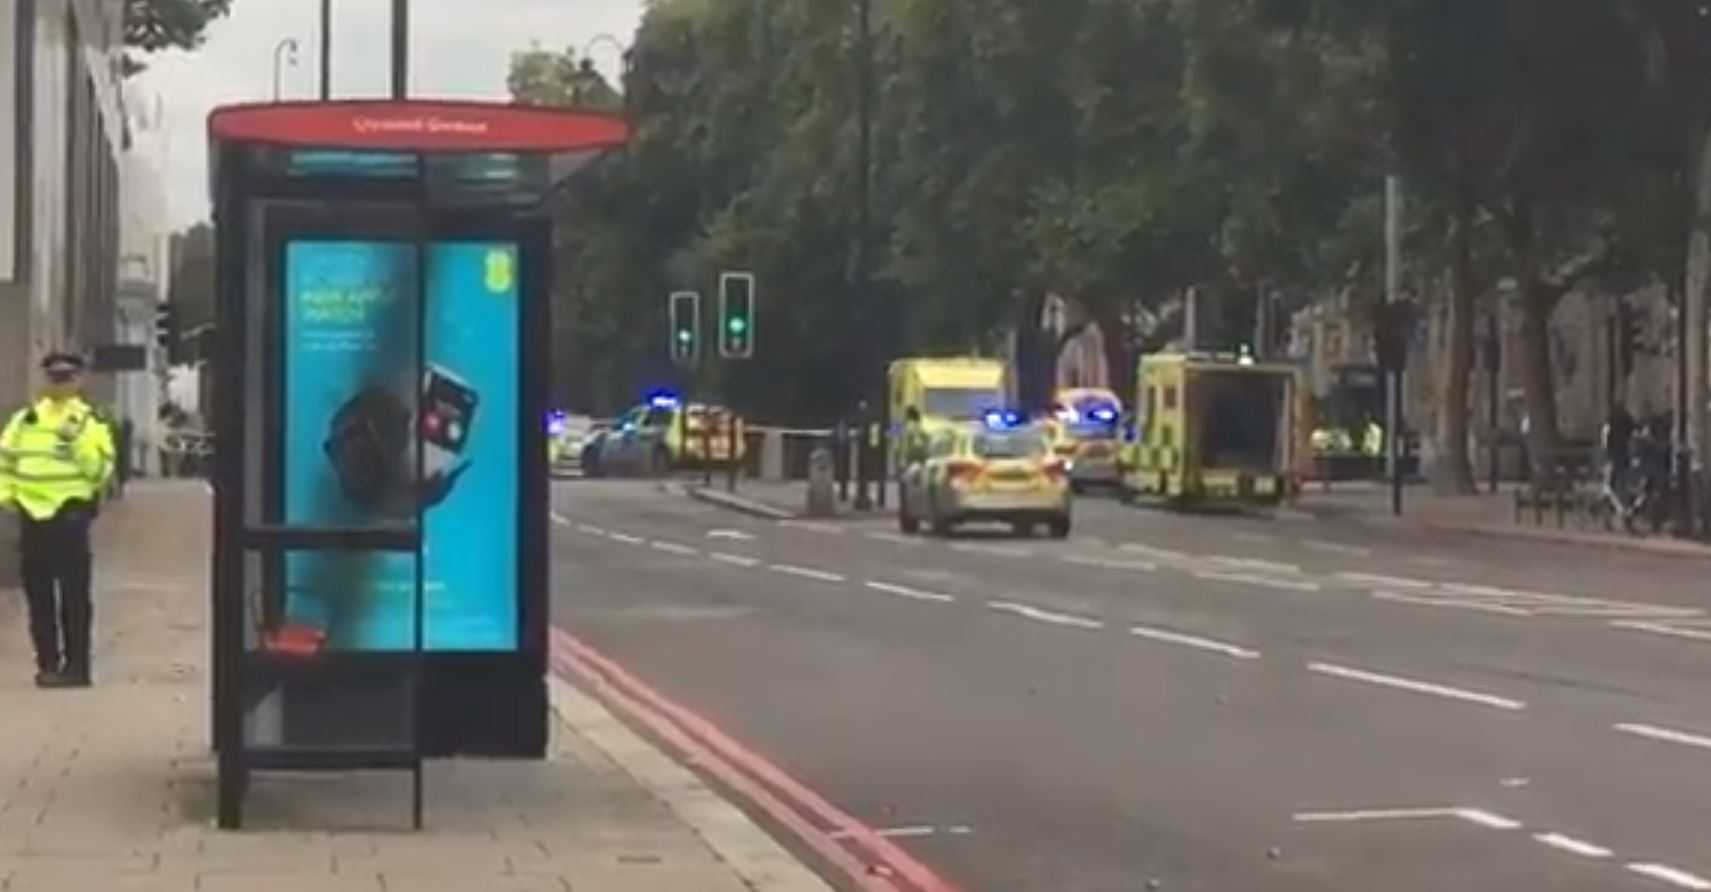 London's museums district sealed off after auto  hits pedestrians